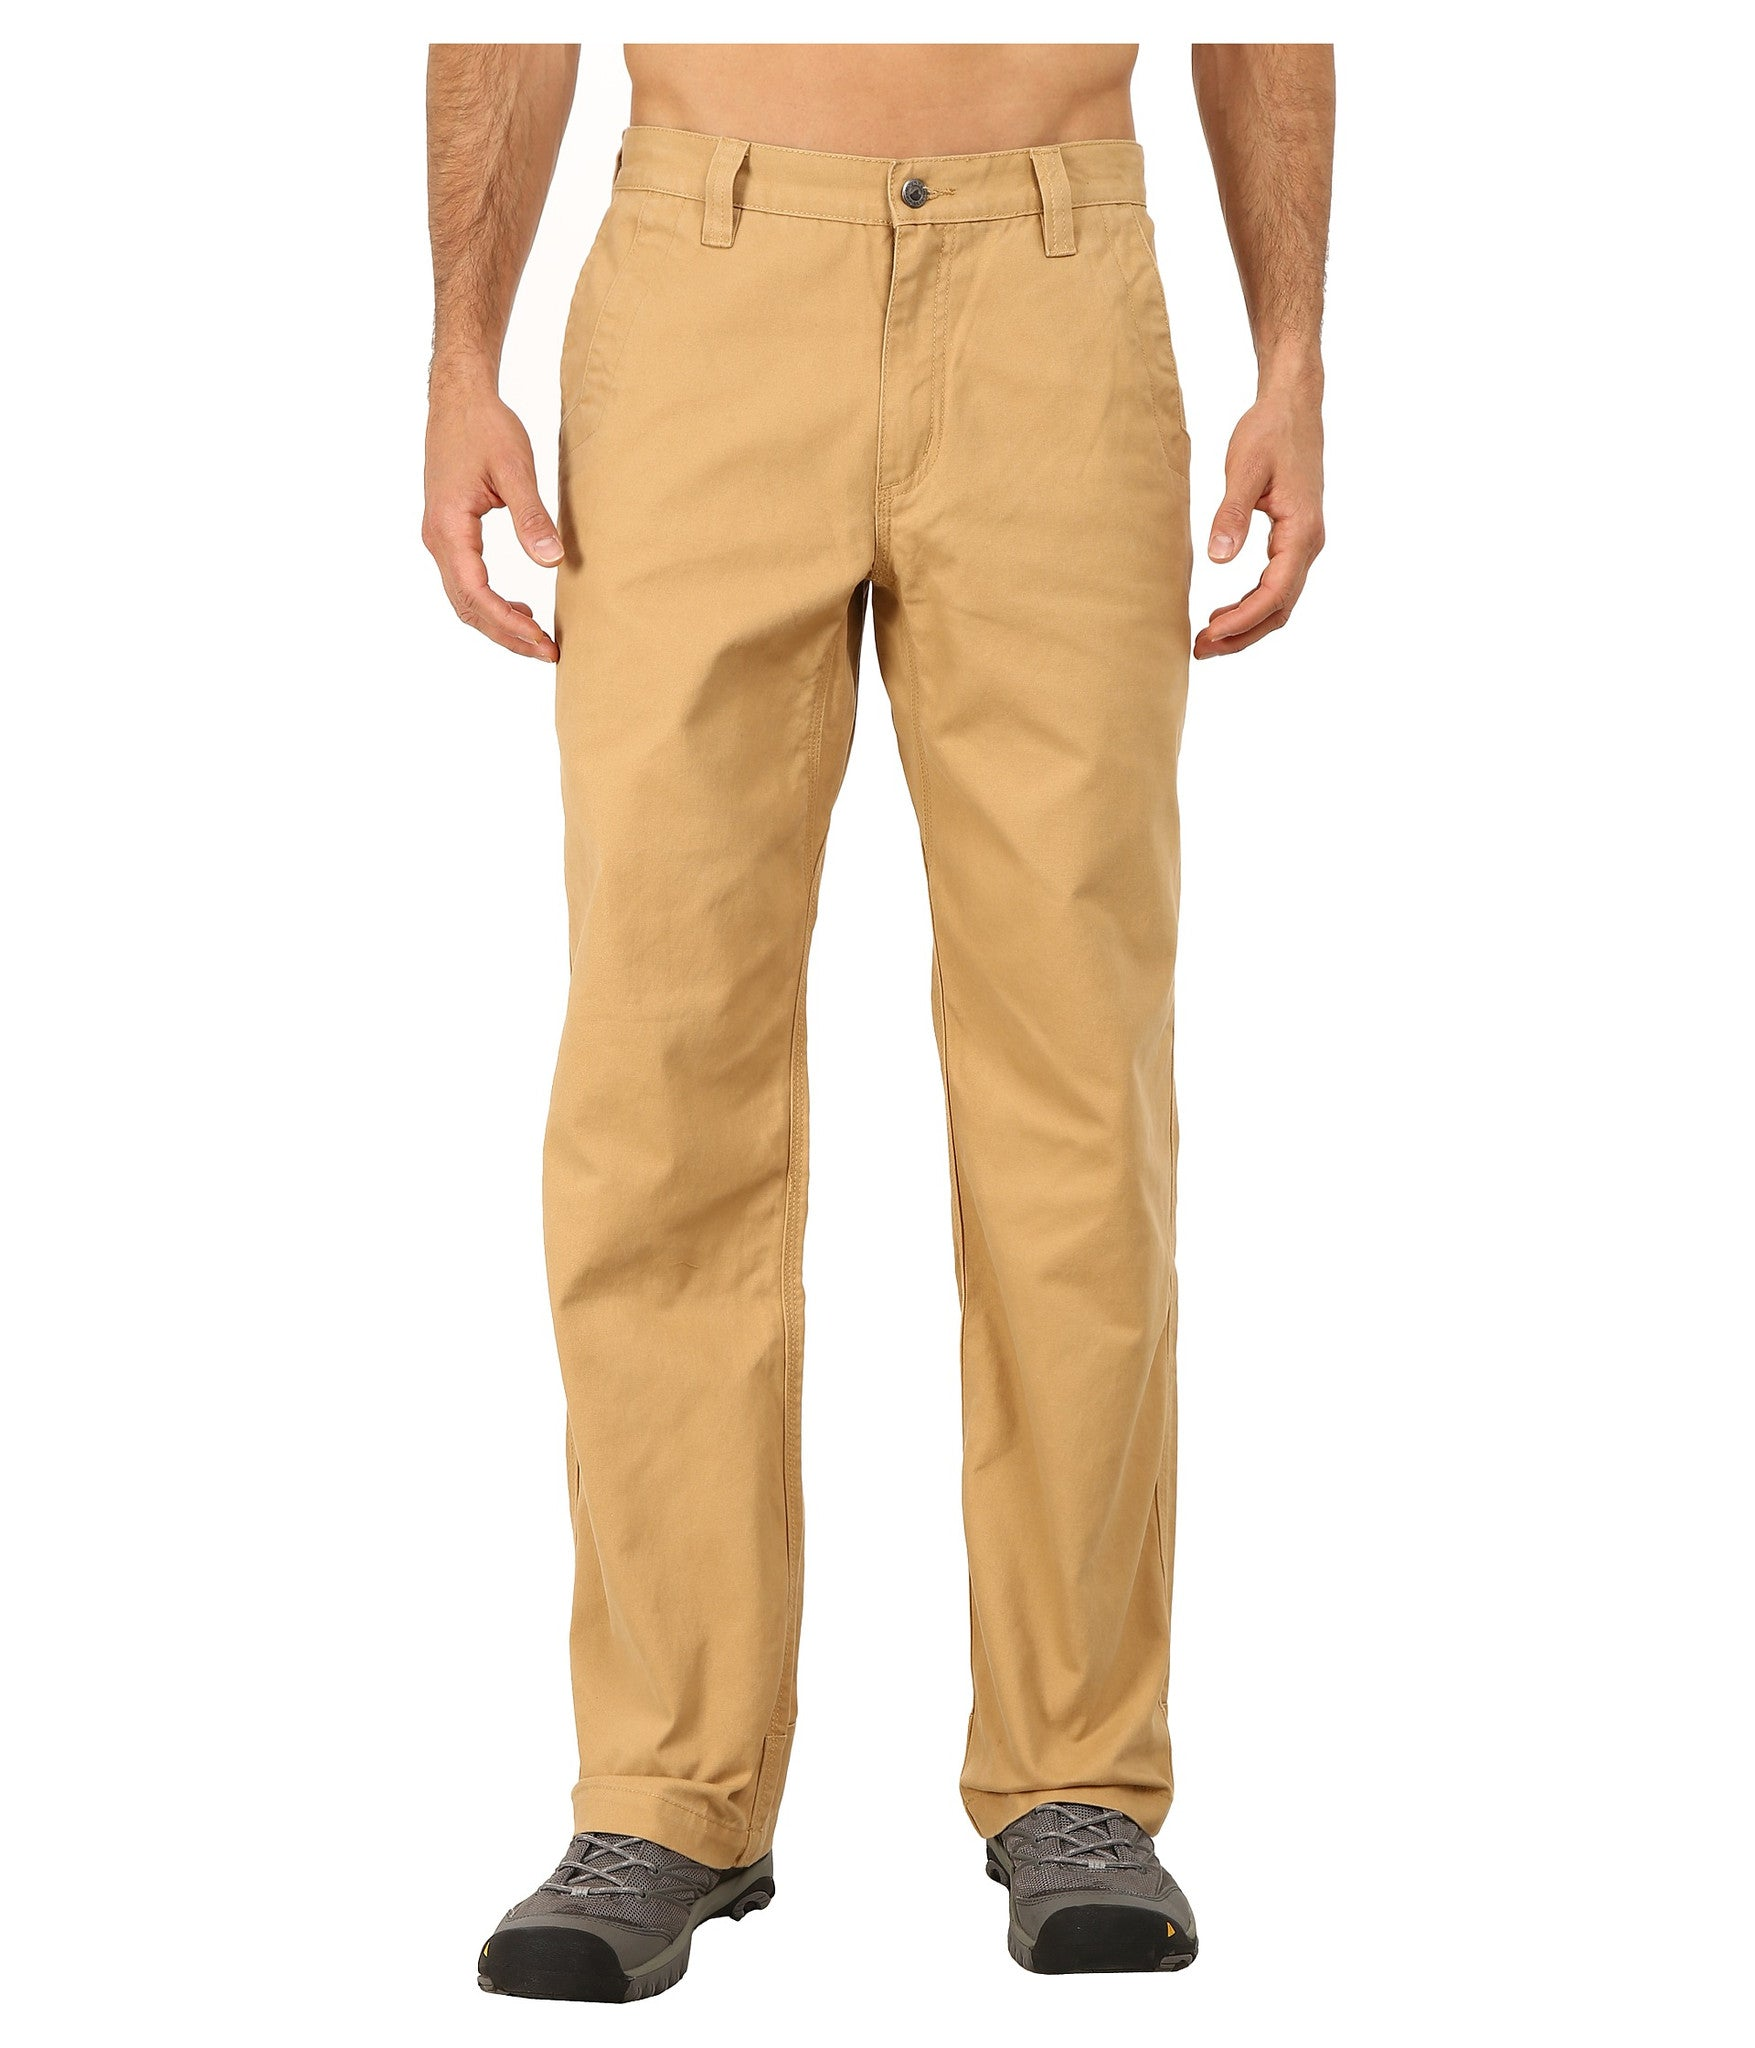 dfa6cfc96 Mountain_khakis_original_mountain_pant-75746-yellowstone.jpg?v=1479424852